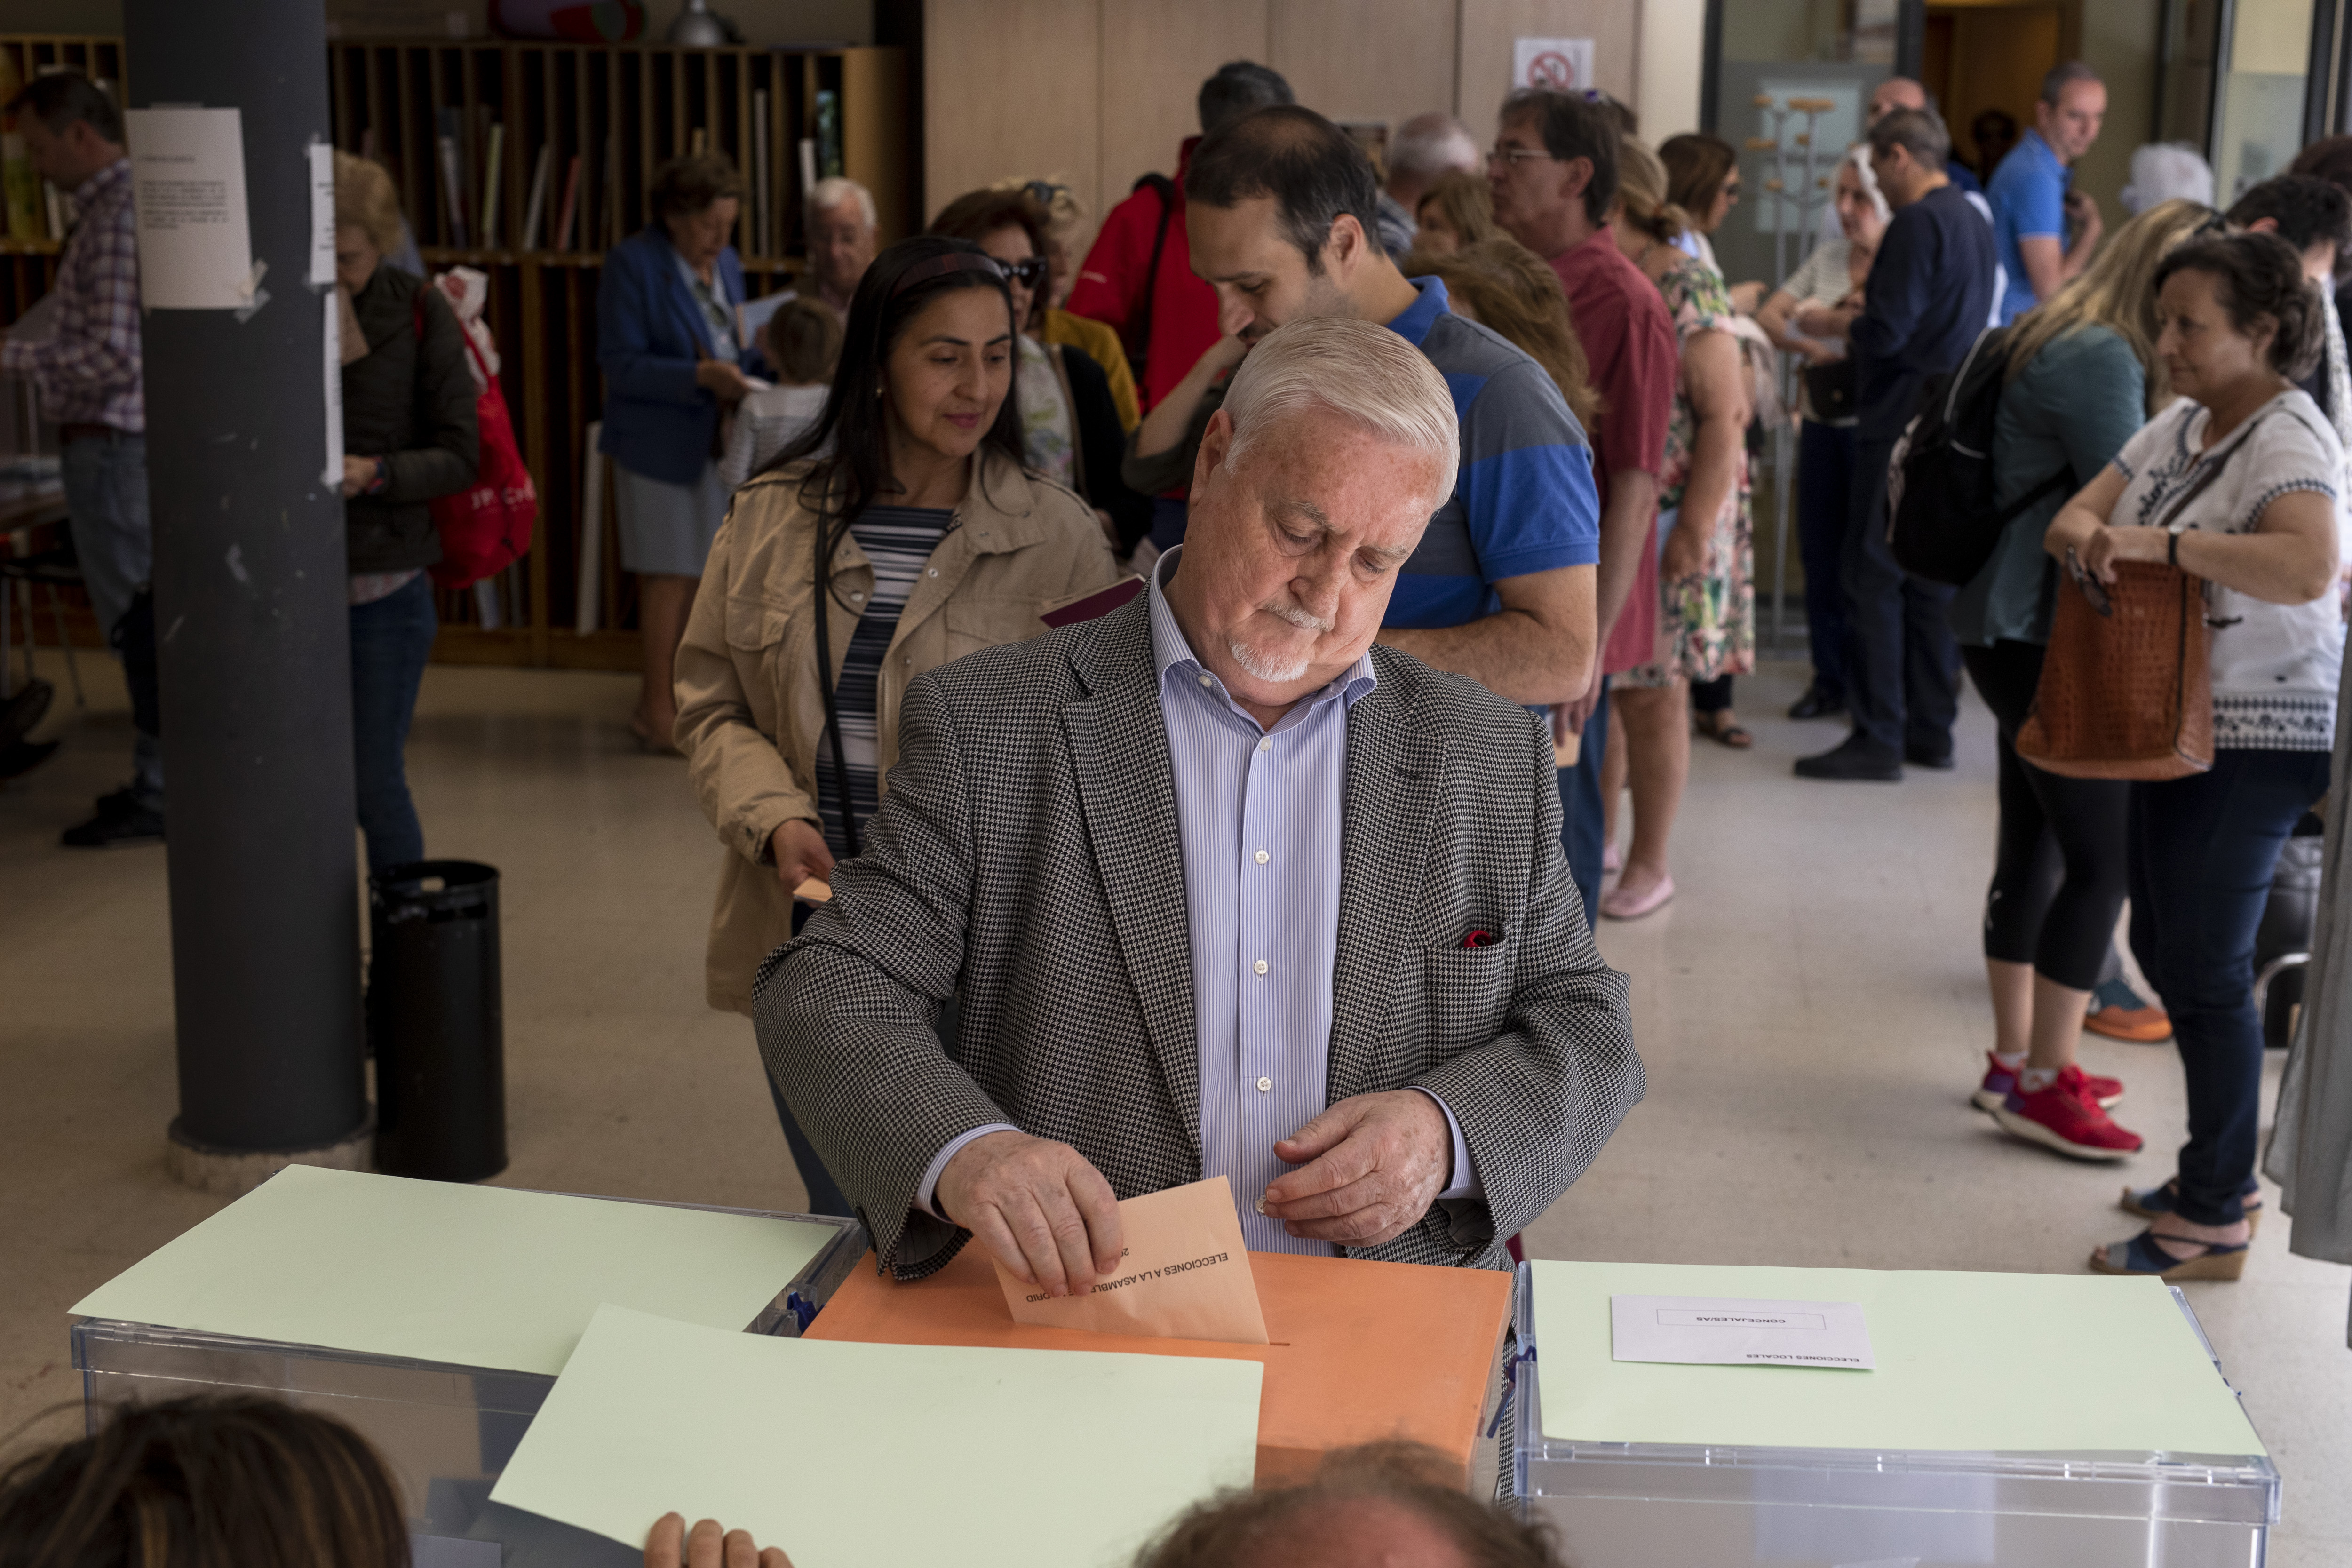 A man casts his ballot at a polling station during voting for the Spanish local, regional and European parliamentary elections on May 26.